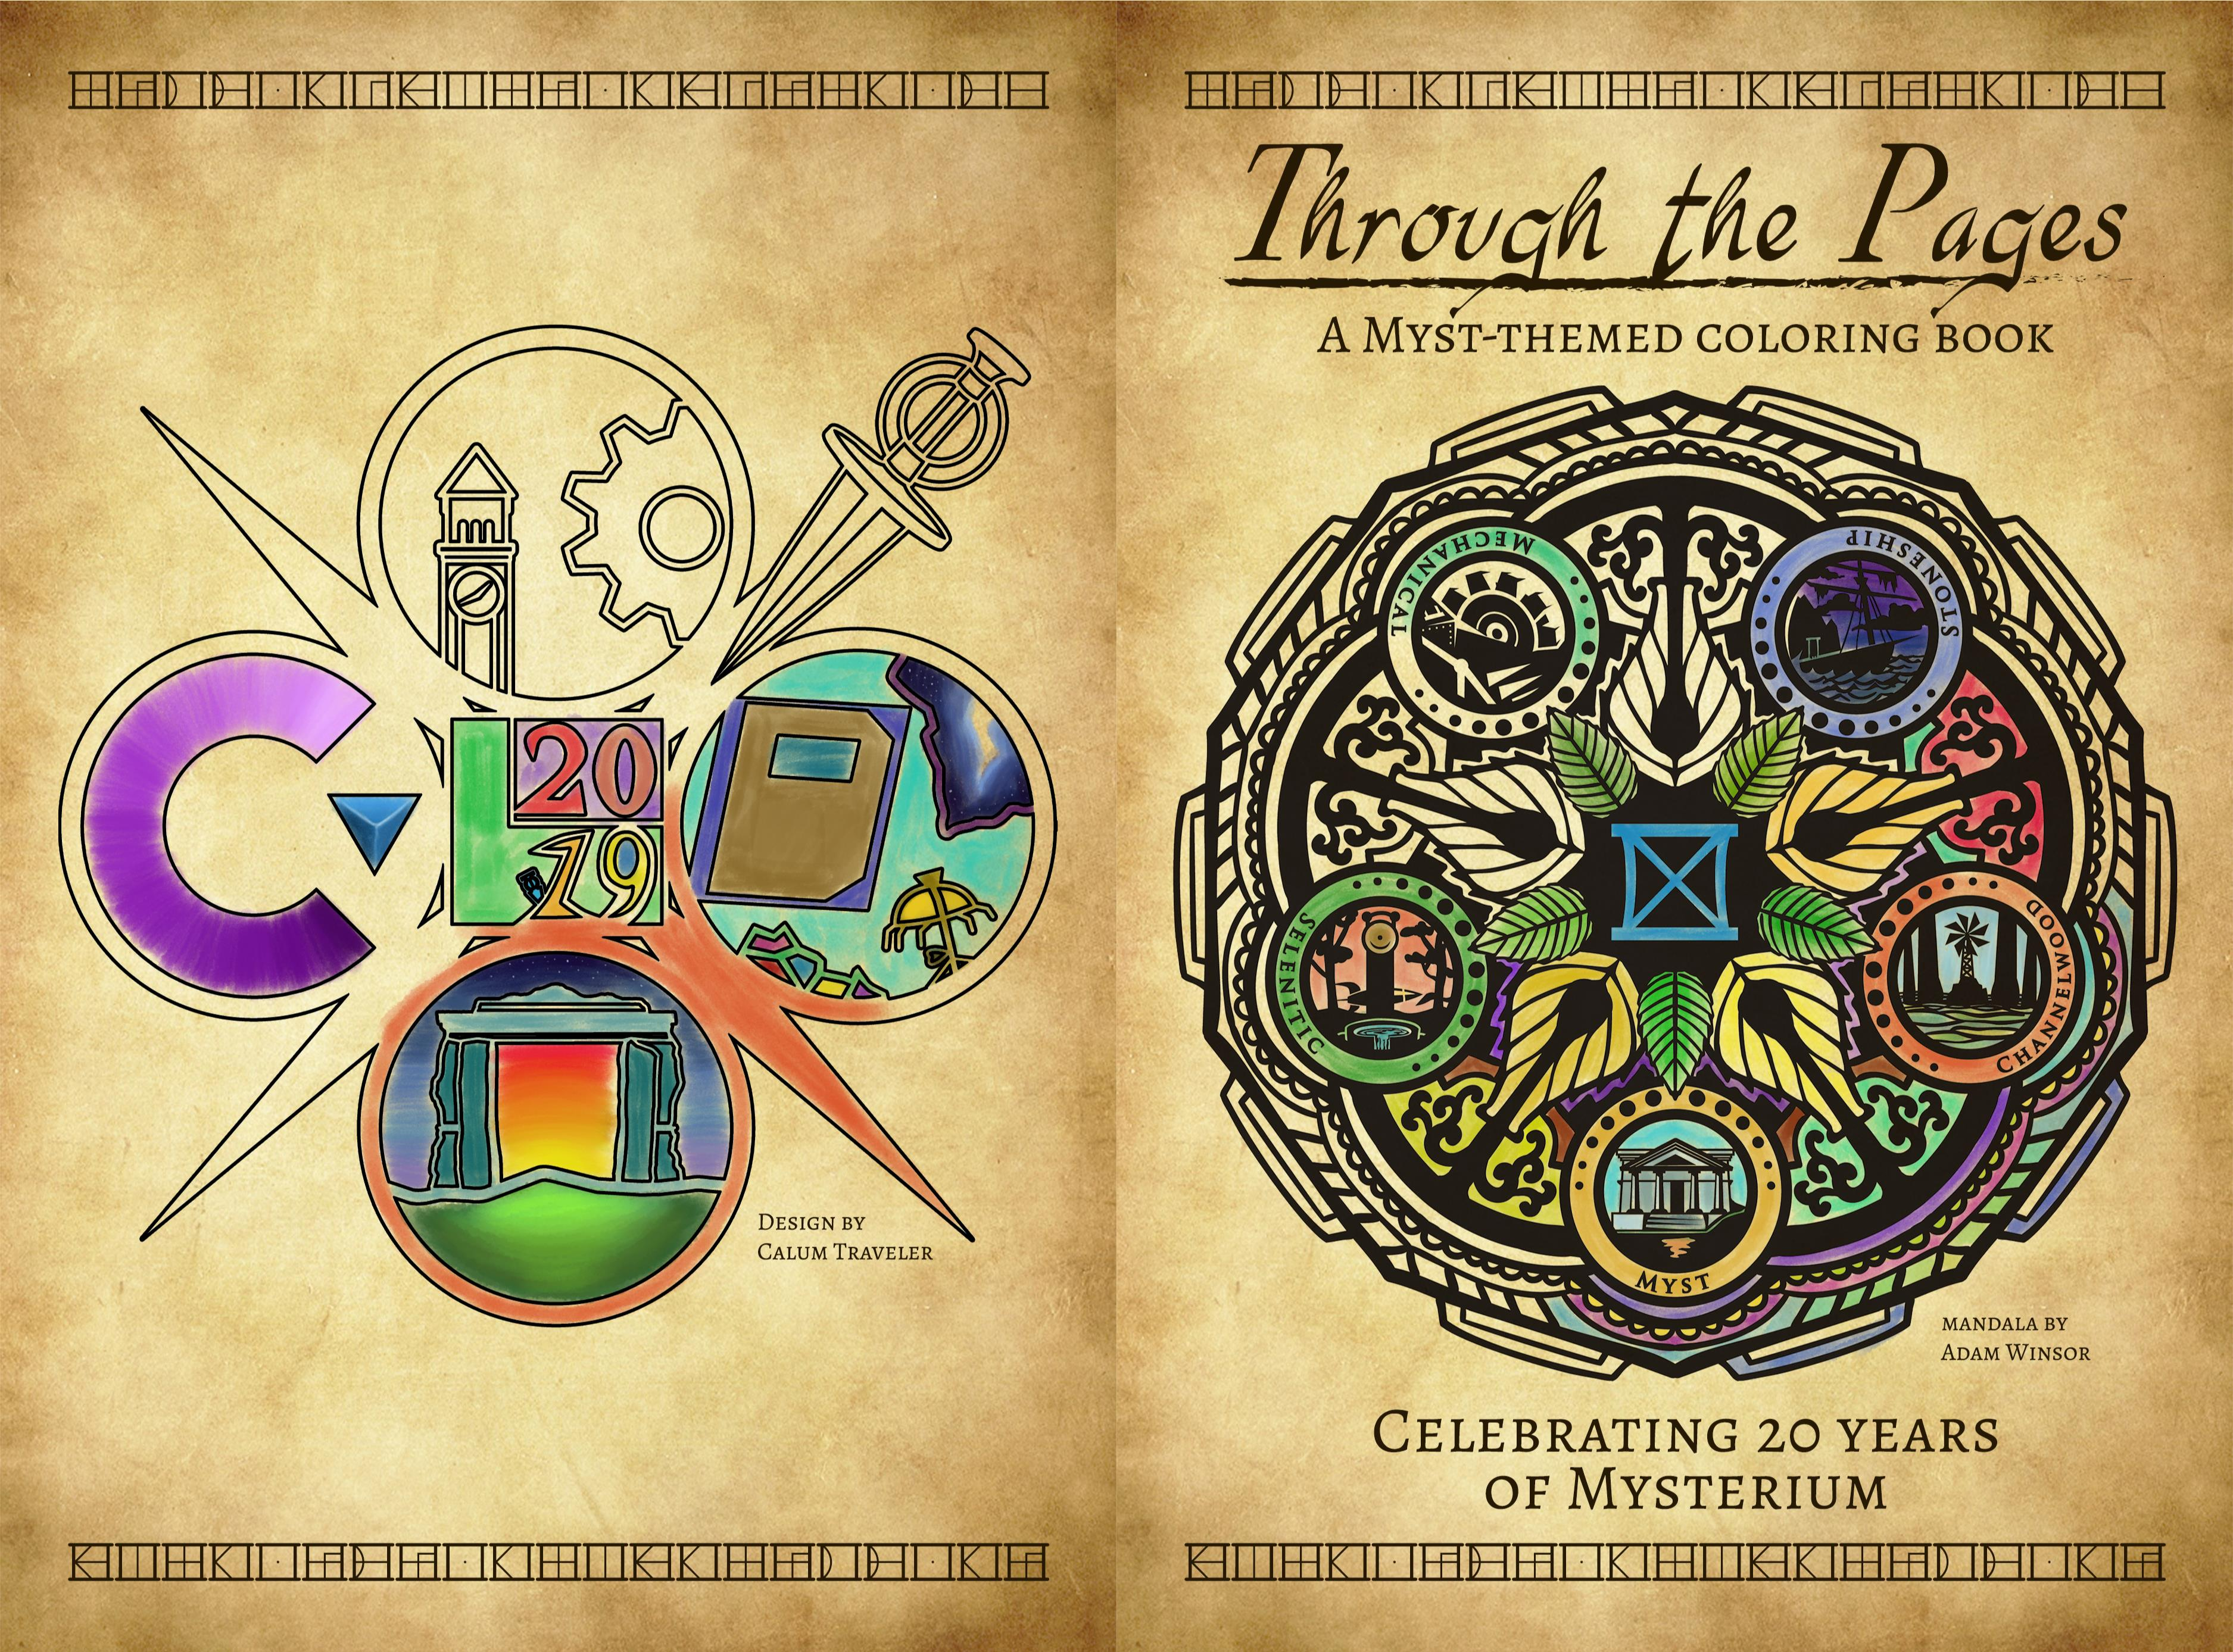 Through the Pages - A Myst Themed Coloring Book cover image